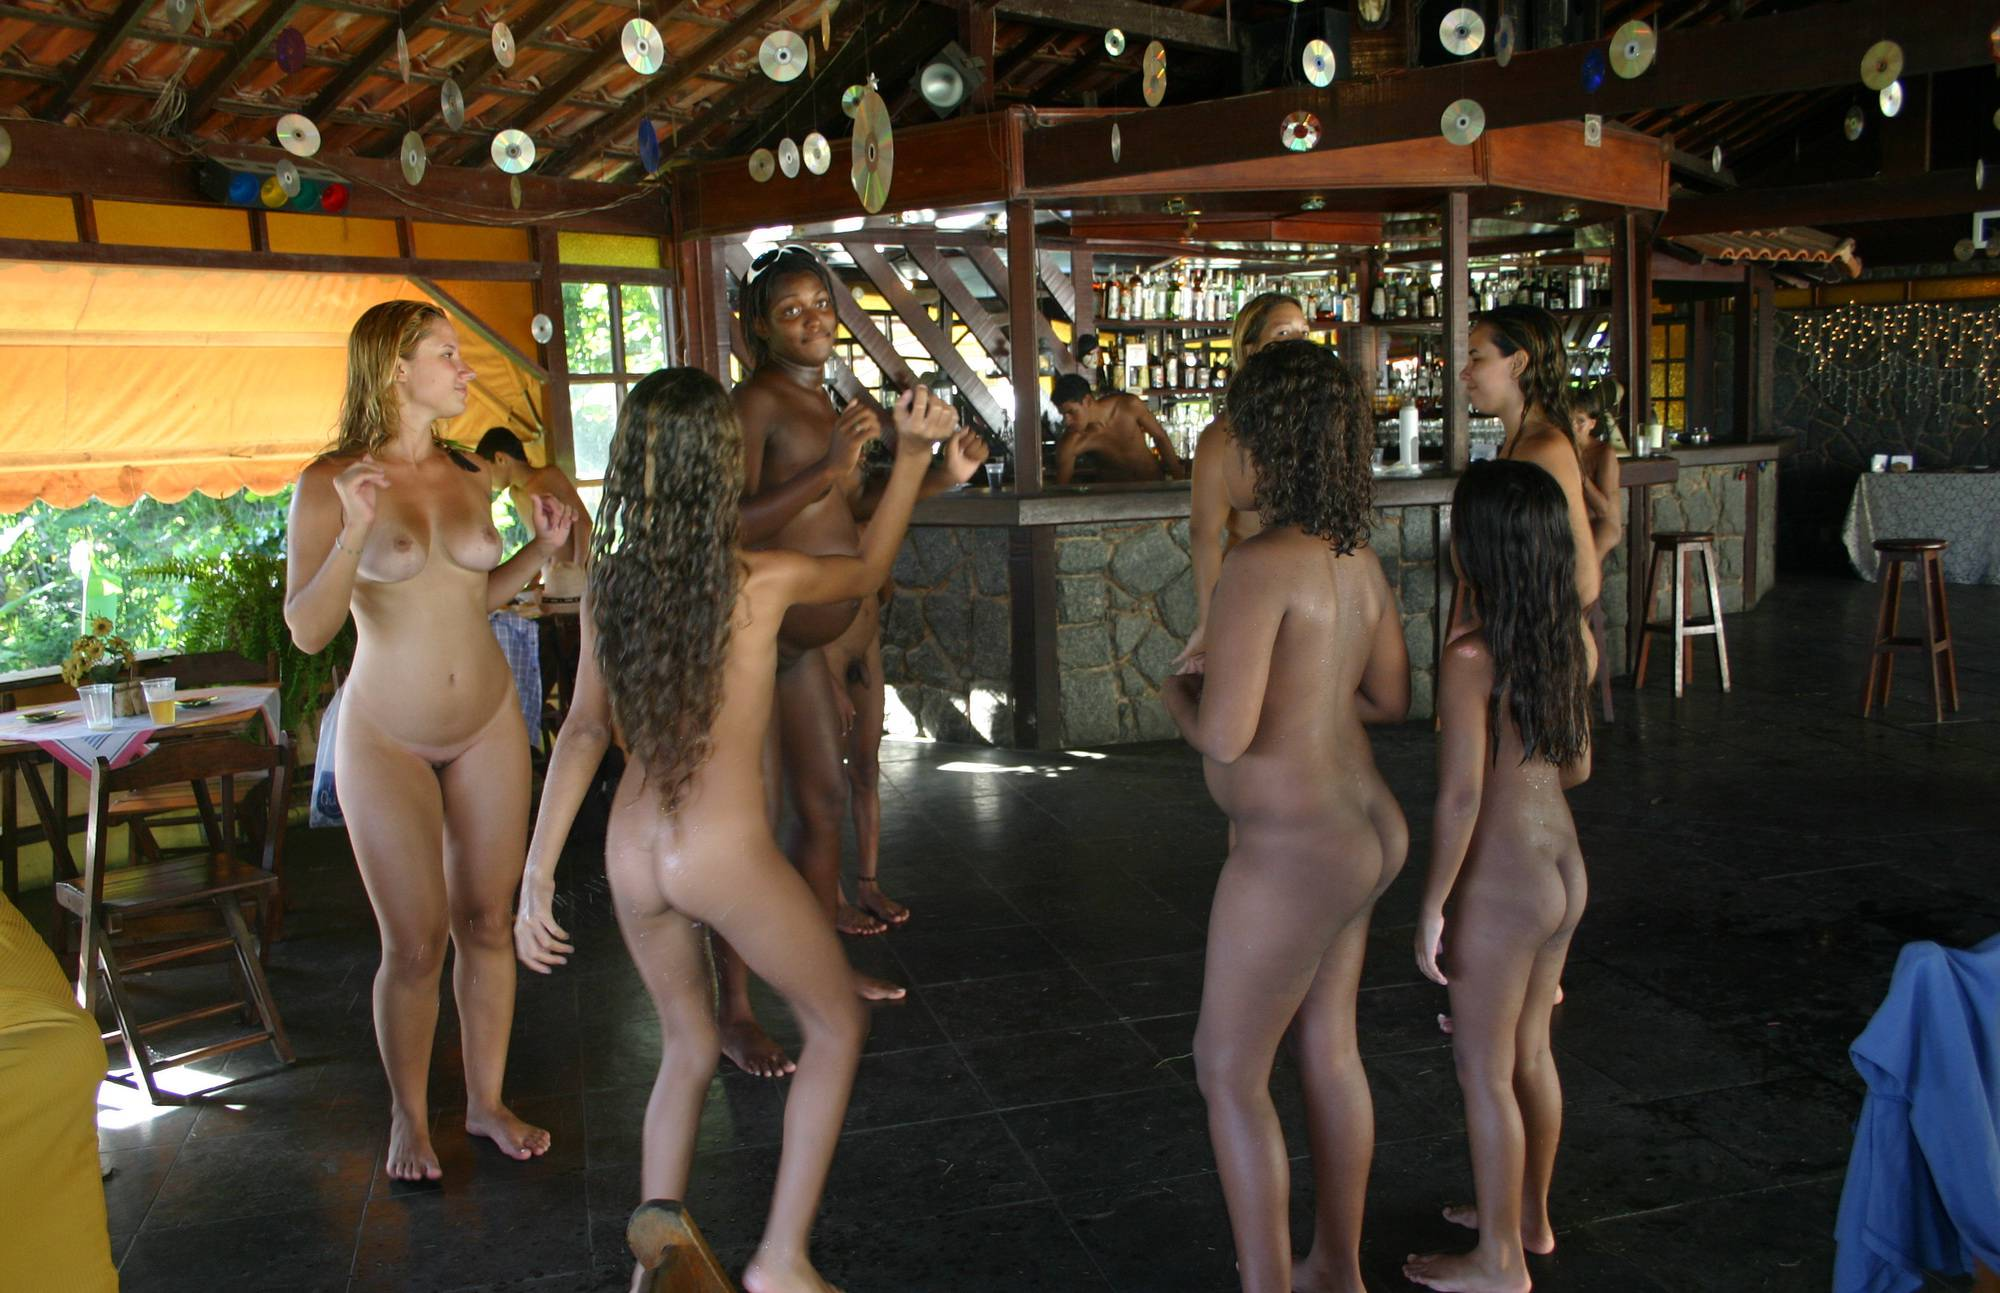 Nudist Pics Dance and Outdoor Party - 1